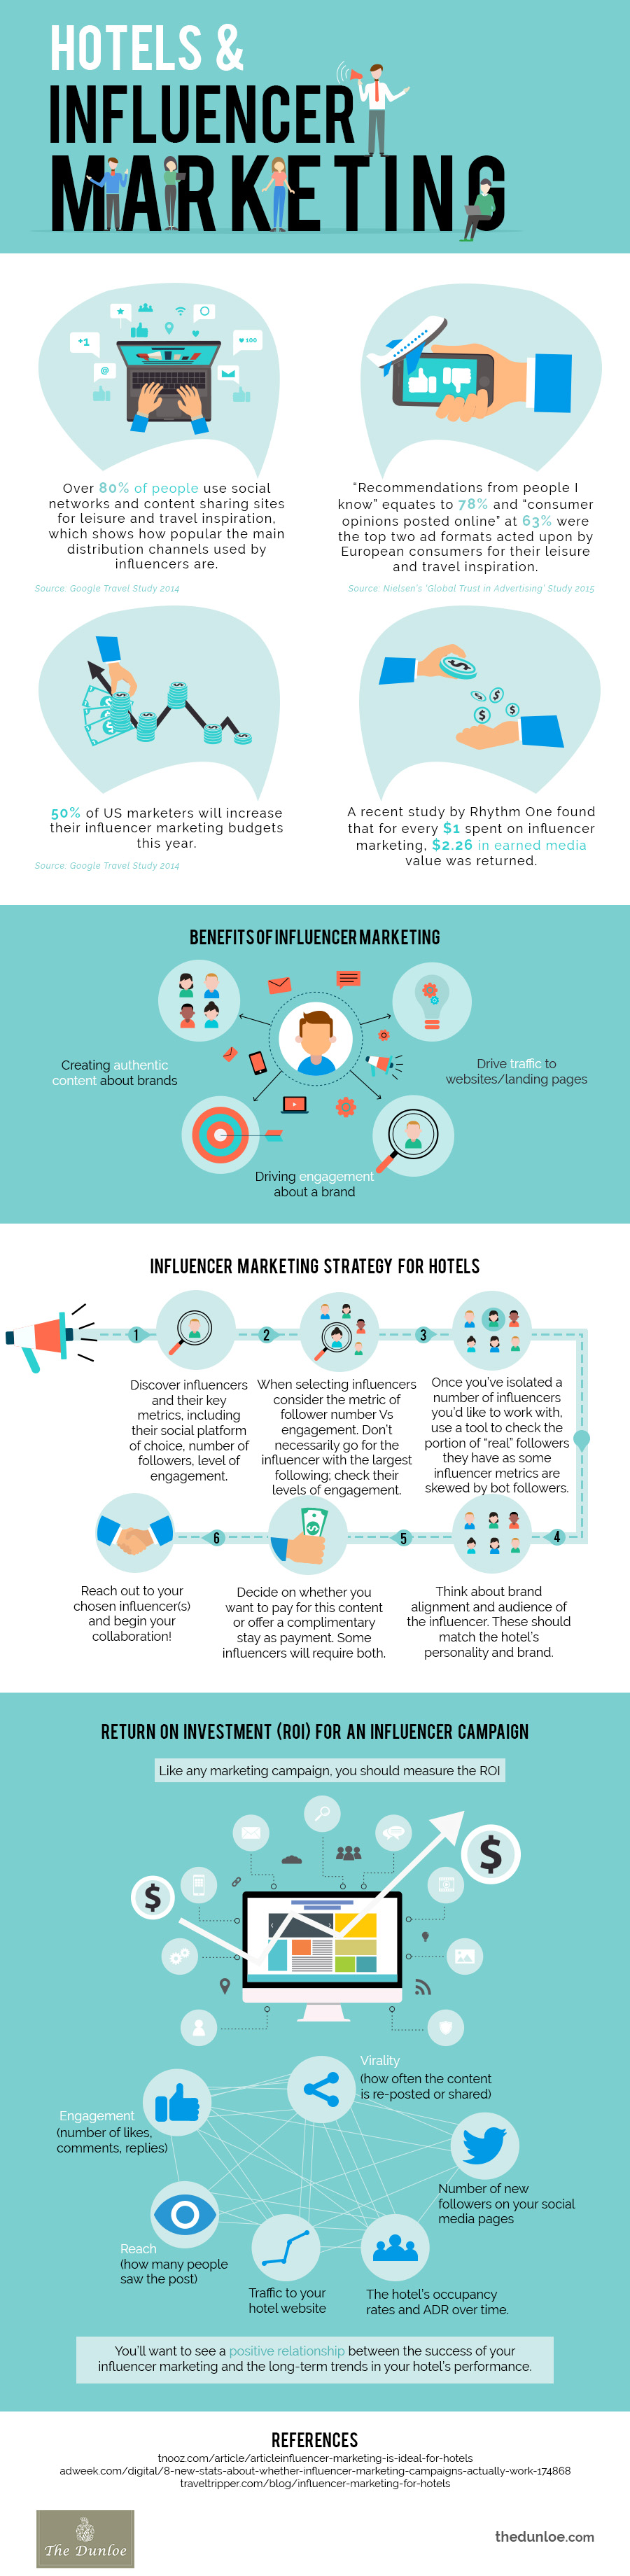 Influencer Marketing Hotels Infographic